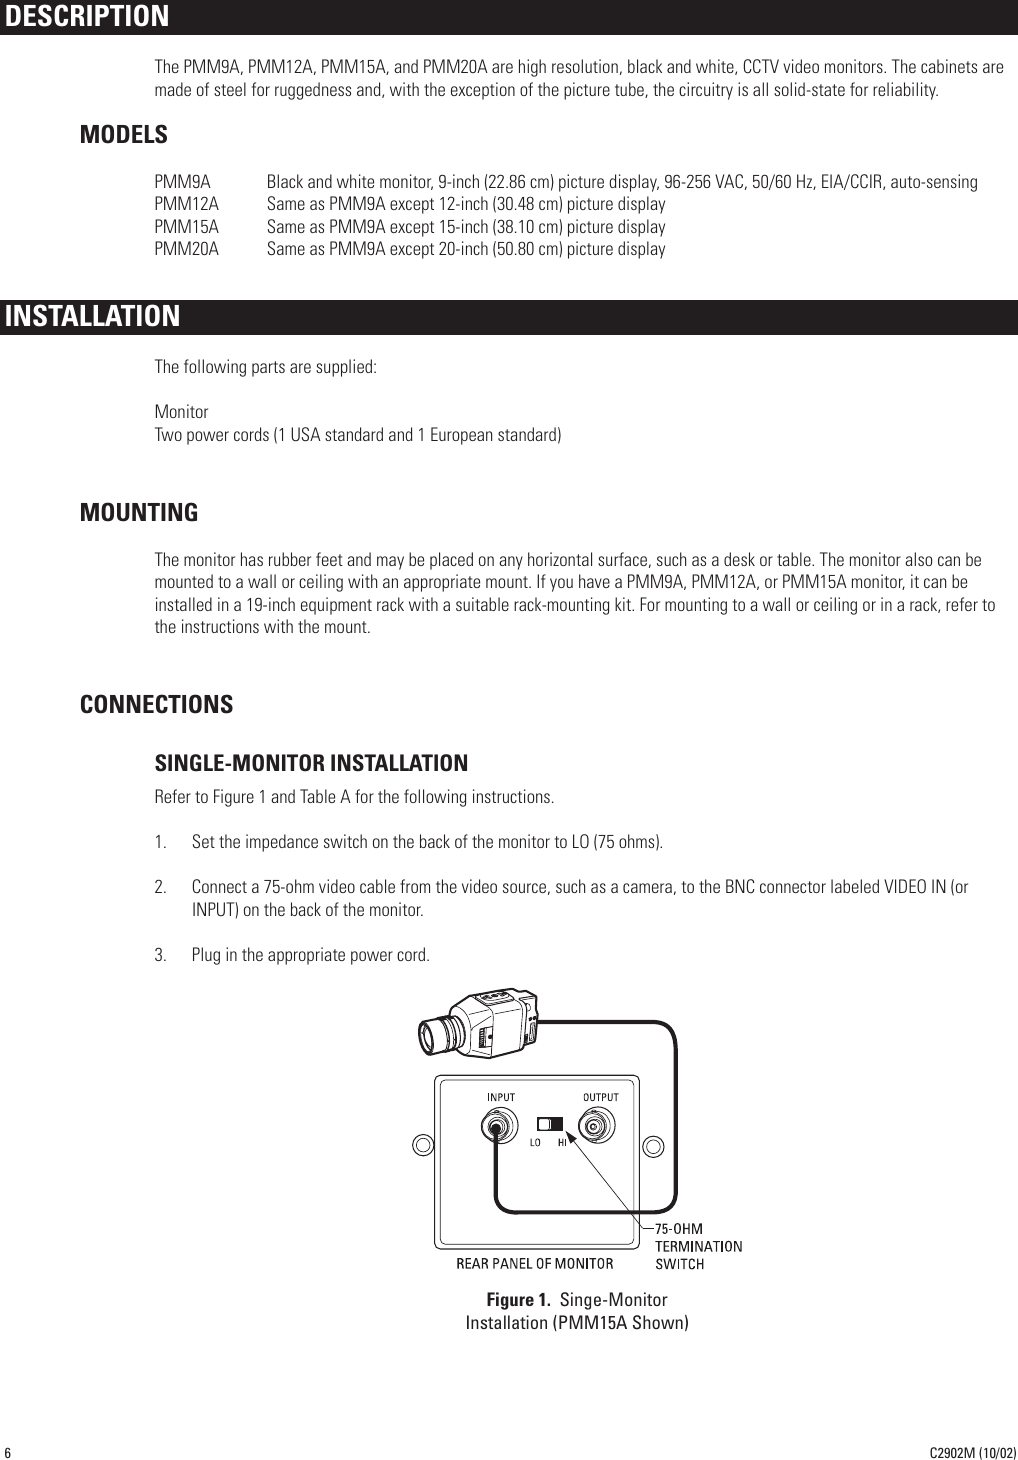 Pelco Computer Monitor Pmm12a Users Manual C2902m 10 02 Bnc Connector Wiring Diagram Page 6 Of 12